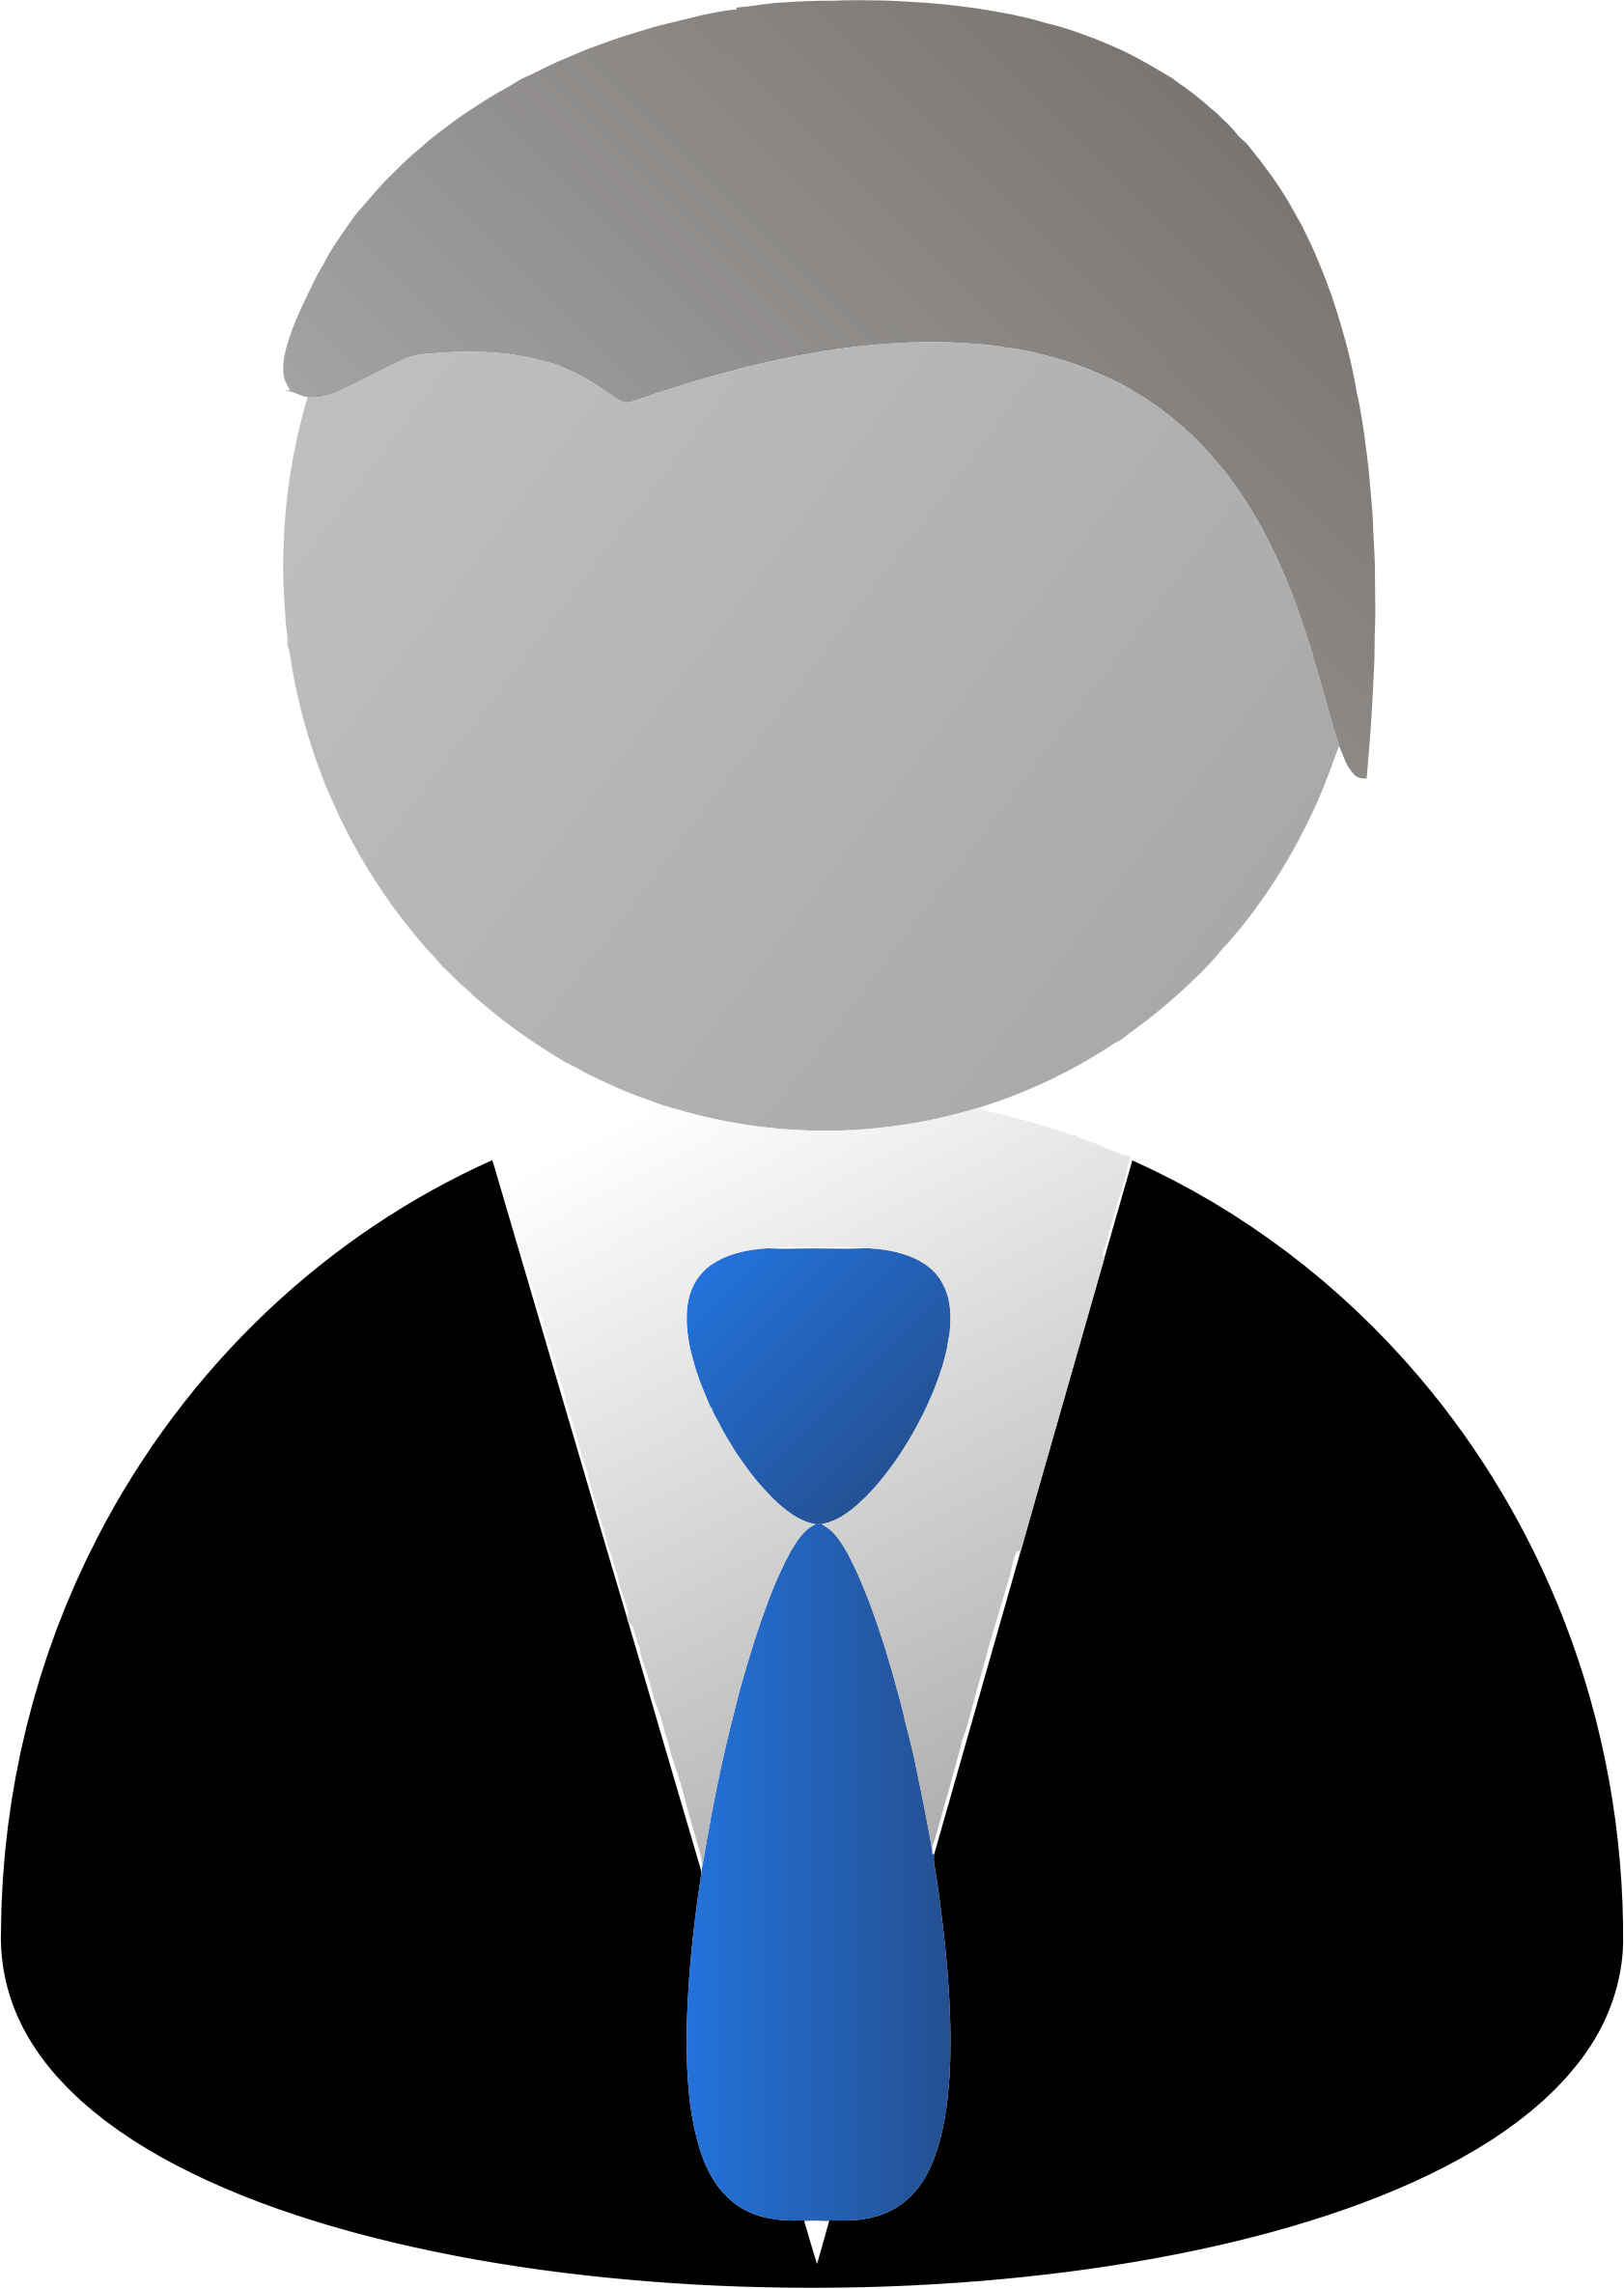 Faceless man in suit. Professional clipart individual professional